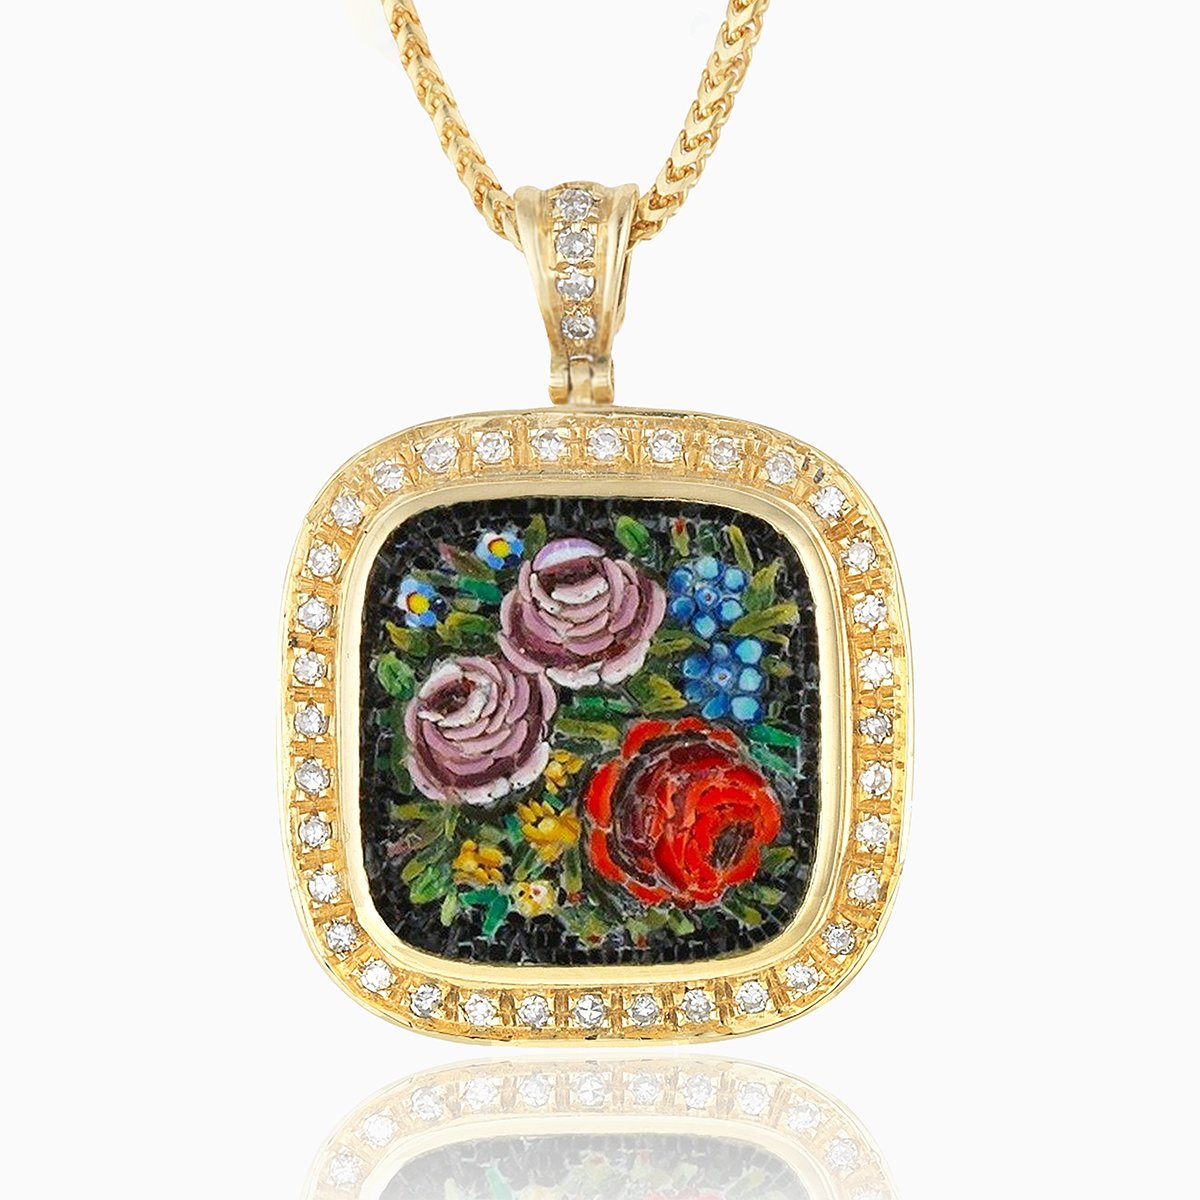 Product title: Flower Micromosaic Locket, product type: Locket